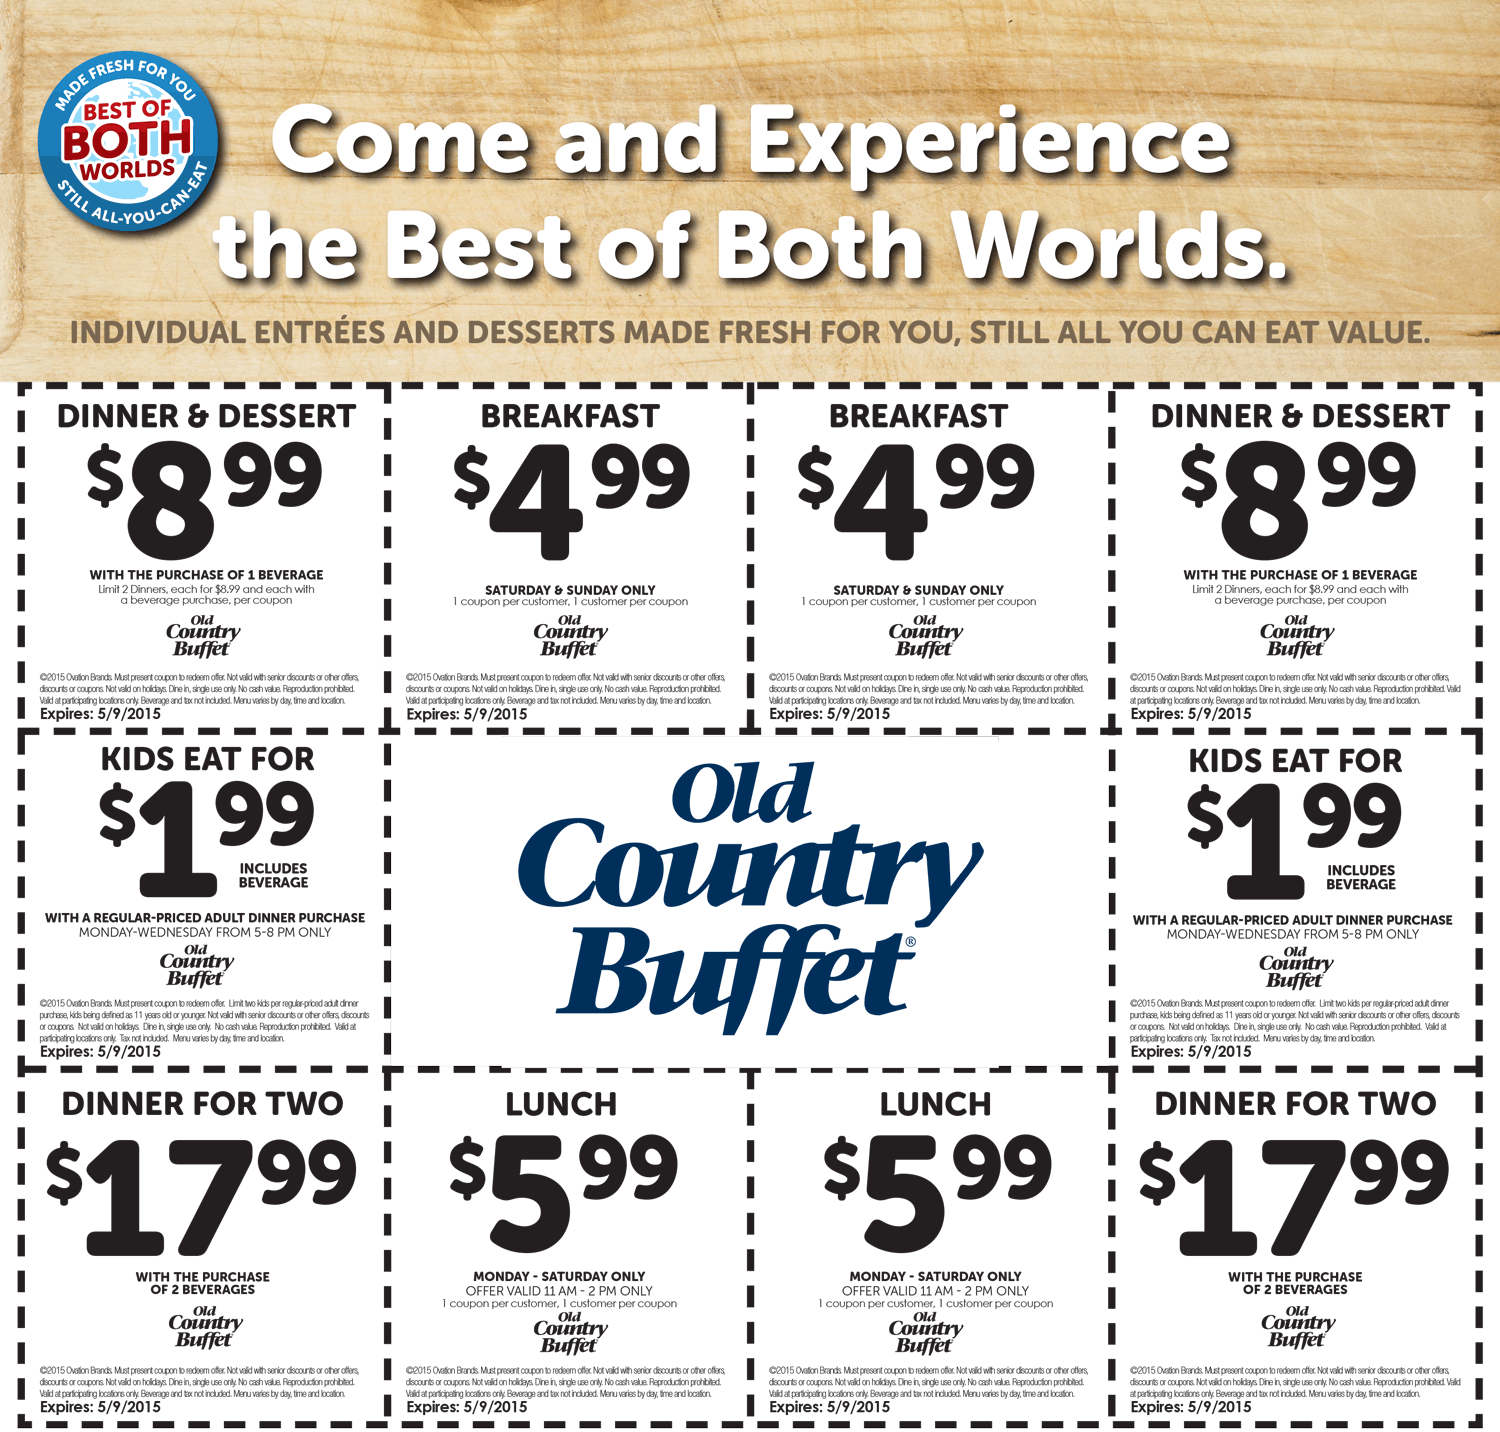 Old Country Buffet Coupon January 2018 $2 kids, $5 breakfast, $6 lunch & more at Old Country Buffet